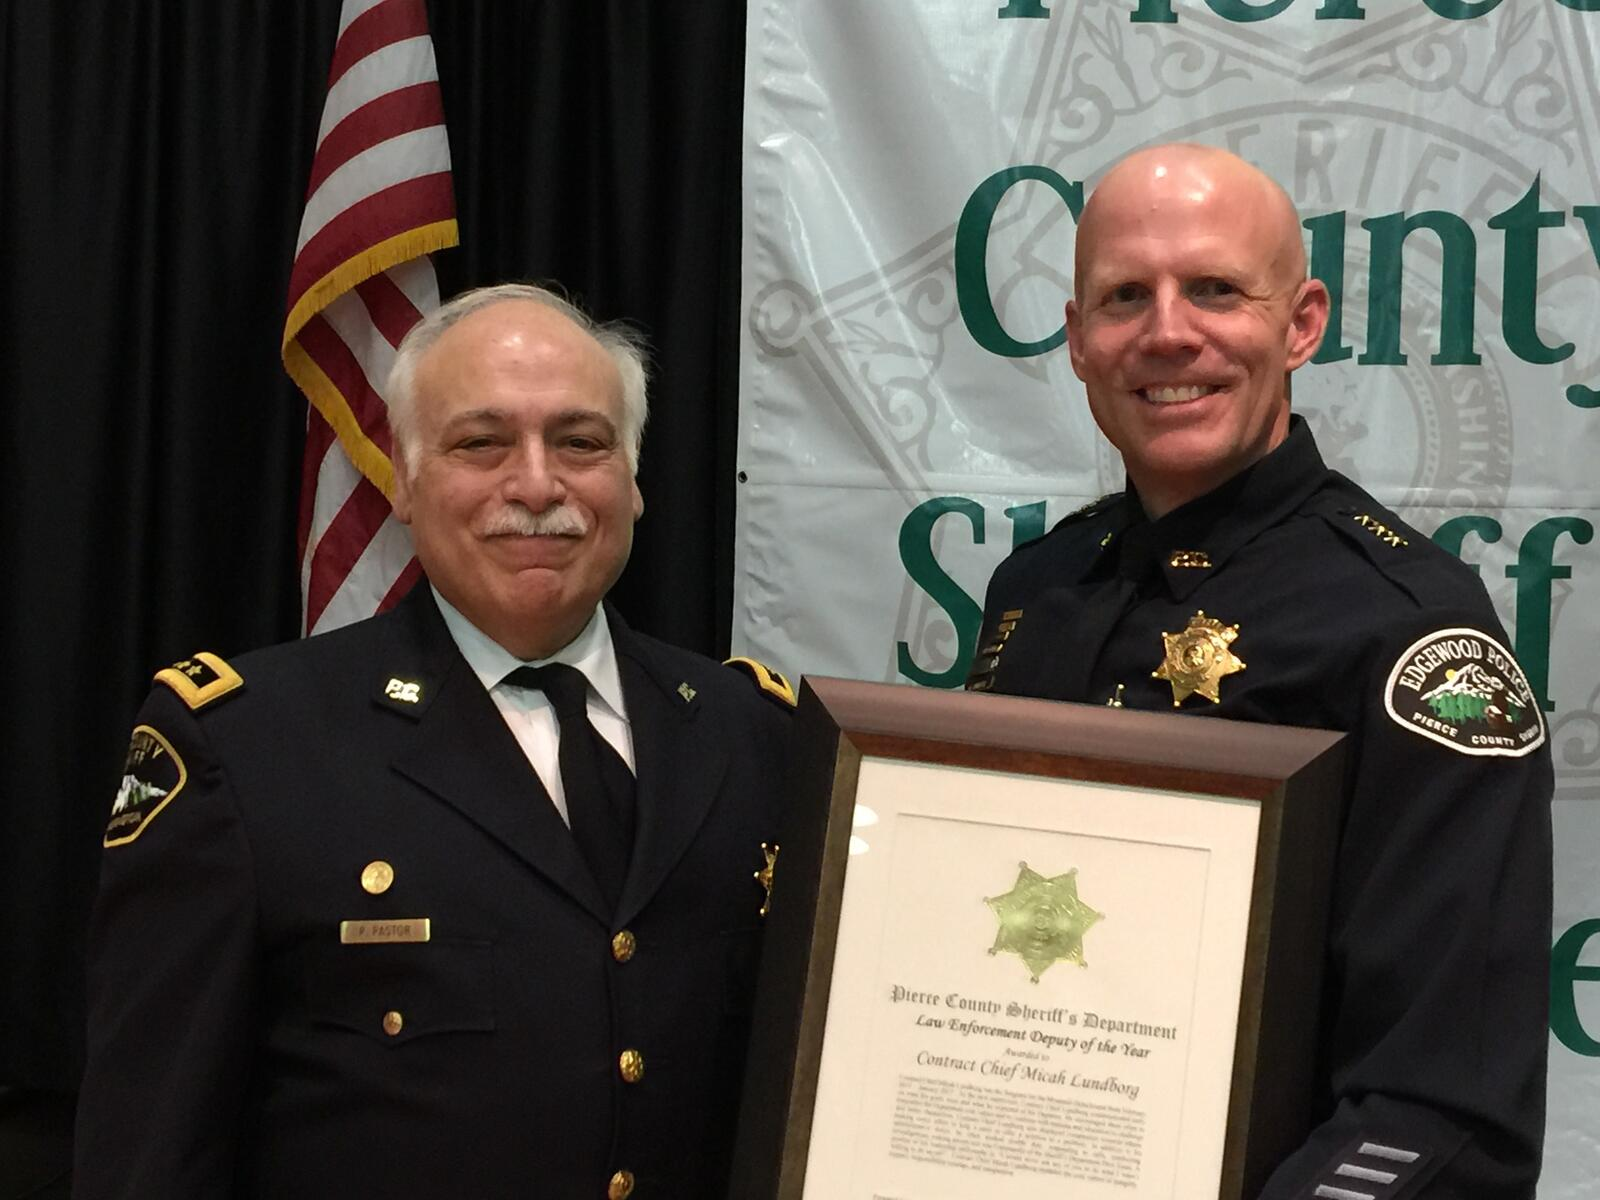 Pierce County Sheriff's Department Annual Awards Ceremony